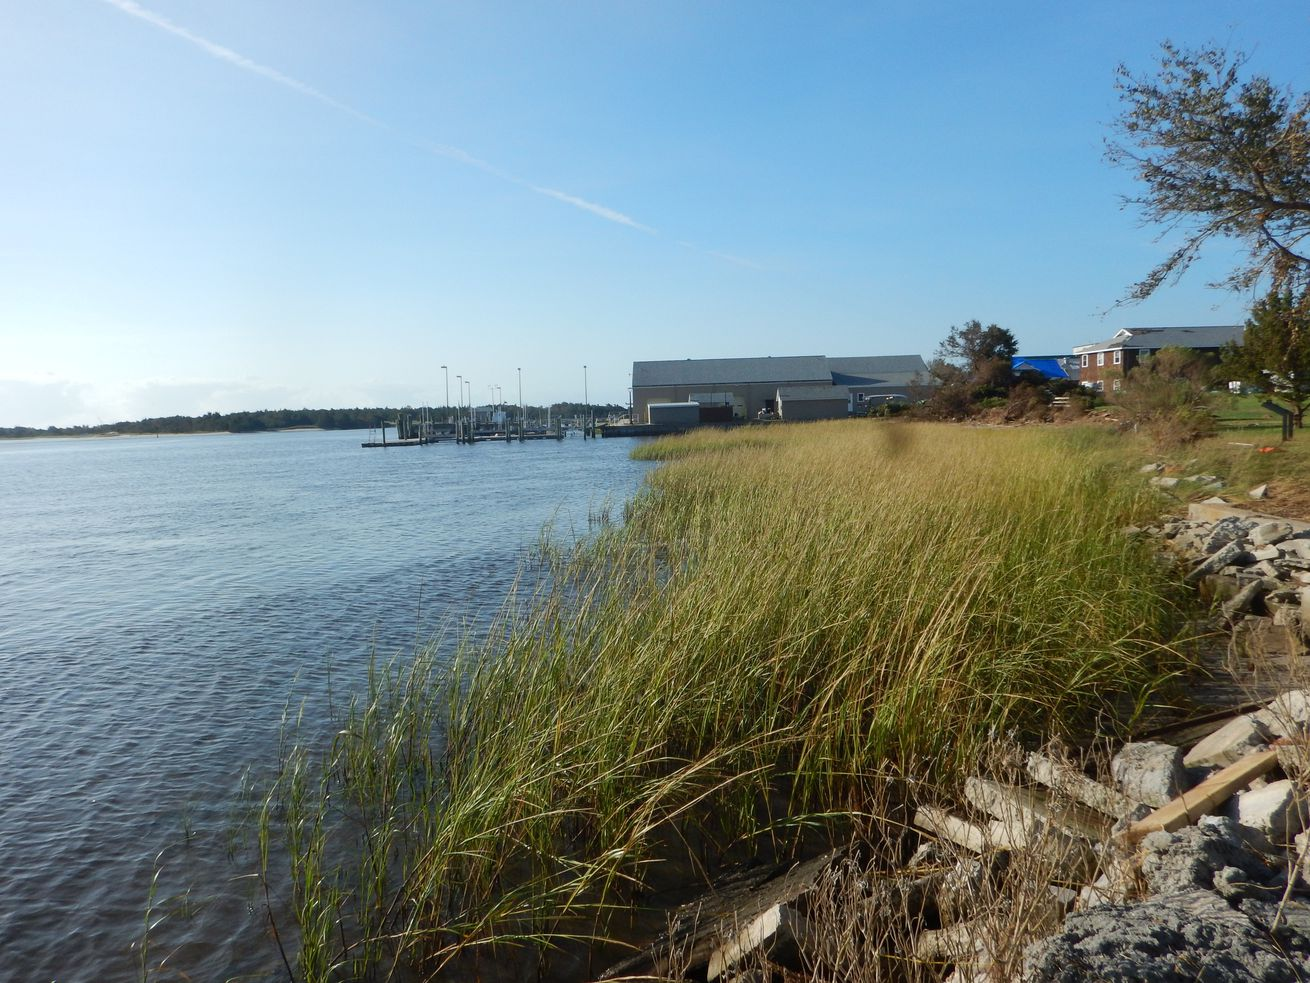 The living shoreline of cordgrass and oyster reef was built by NOAA to protect Pivers Island in Beaumont, North Carolina.